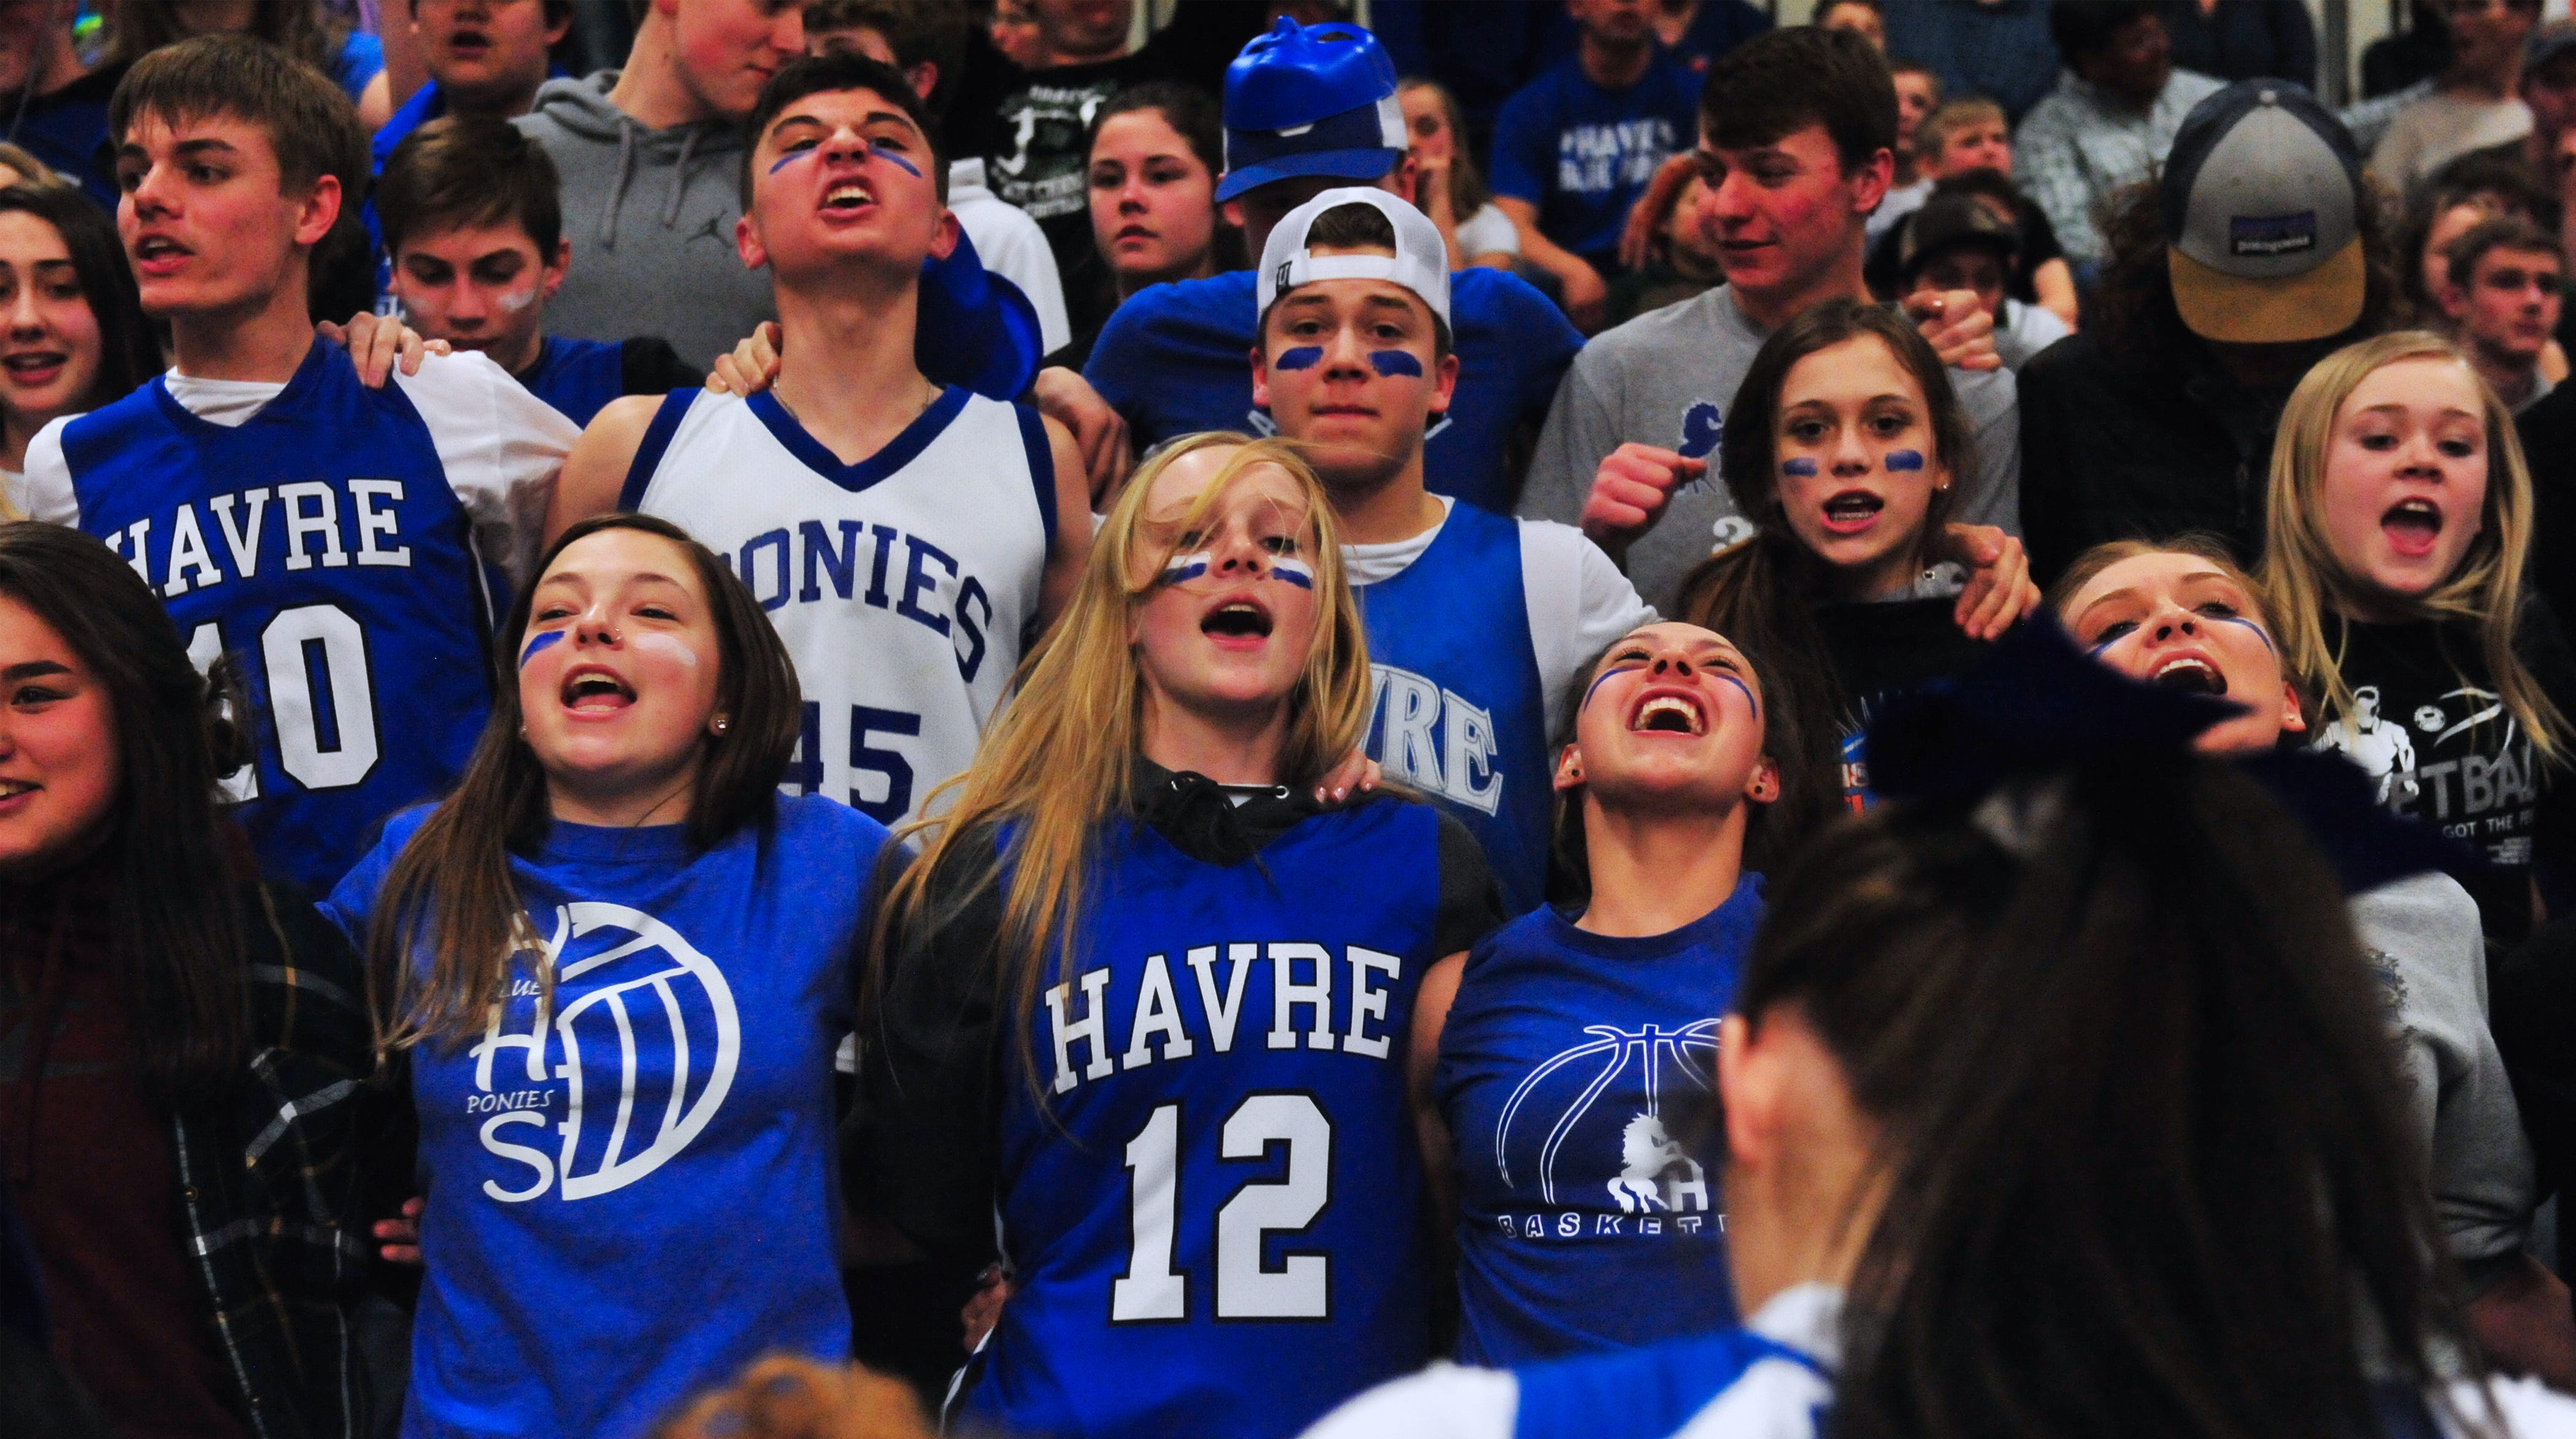 MHSA announces state-tourney sites for 2020-21 school year; Great Falls also receives State AA tennis tourney in 2021